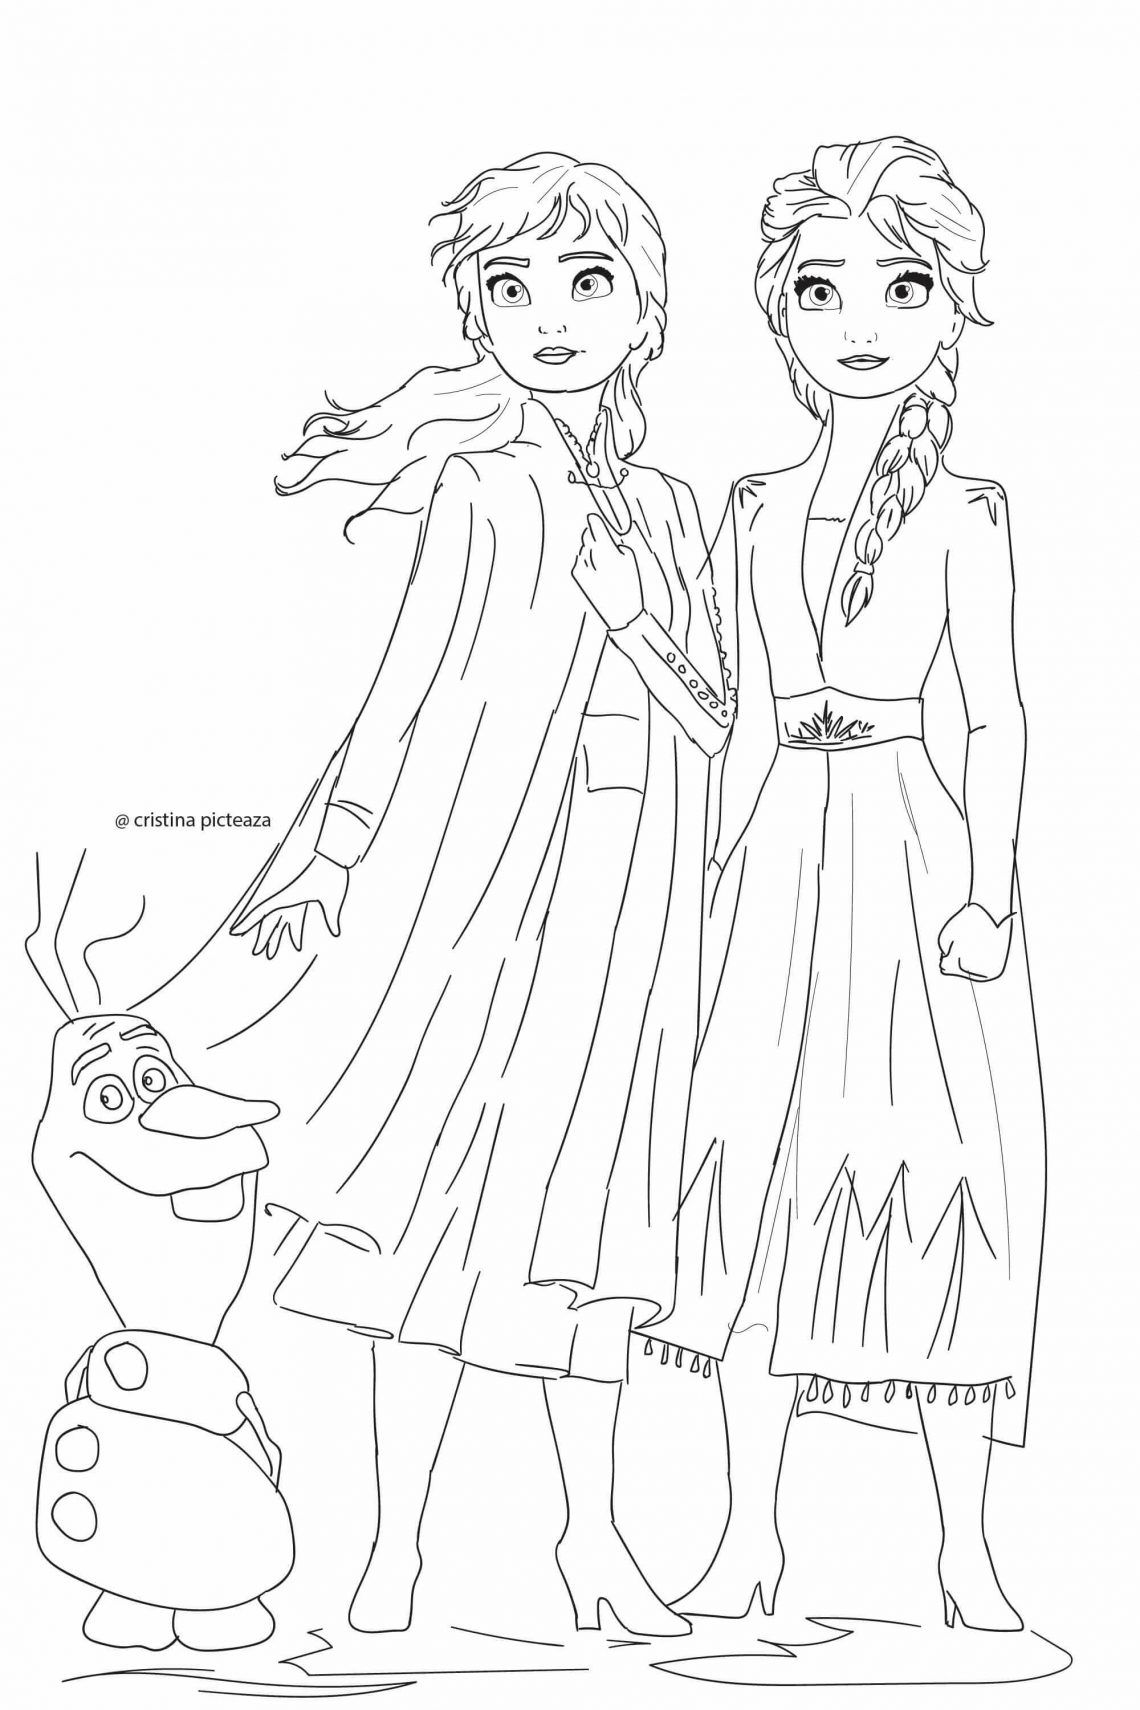 Frozen 2 Coloring Pages Elsa And Anna Coloring Elsa Coloring Pages Frozen Coloring Pages Disney Princess Coloring Pages